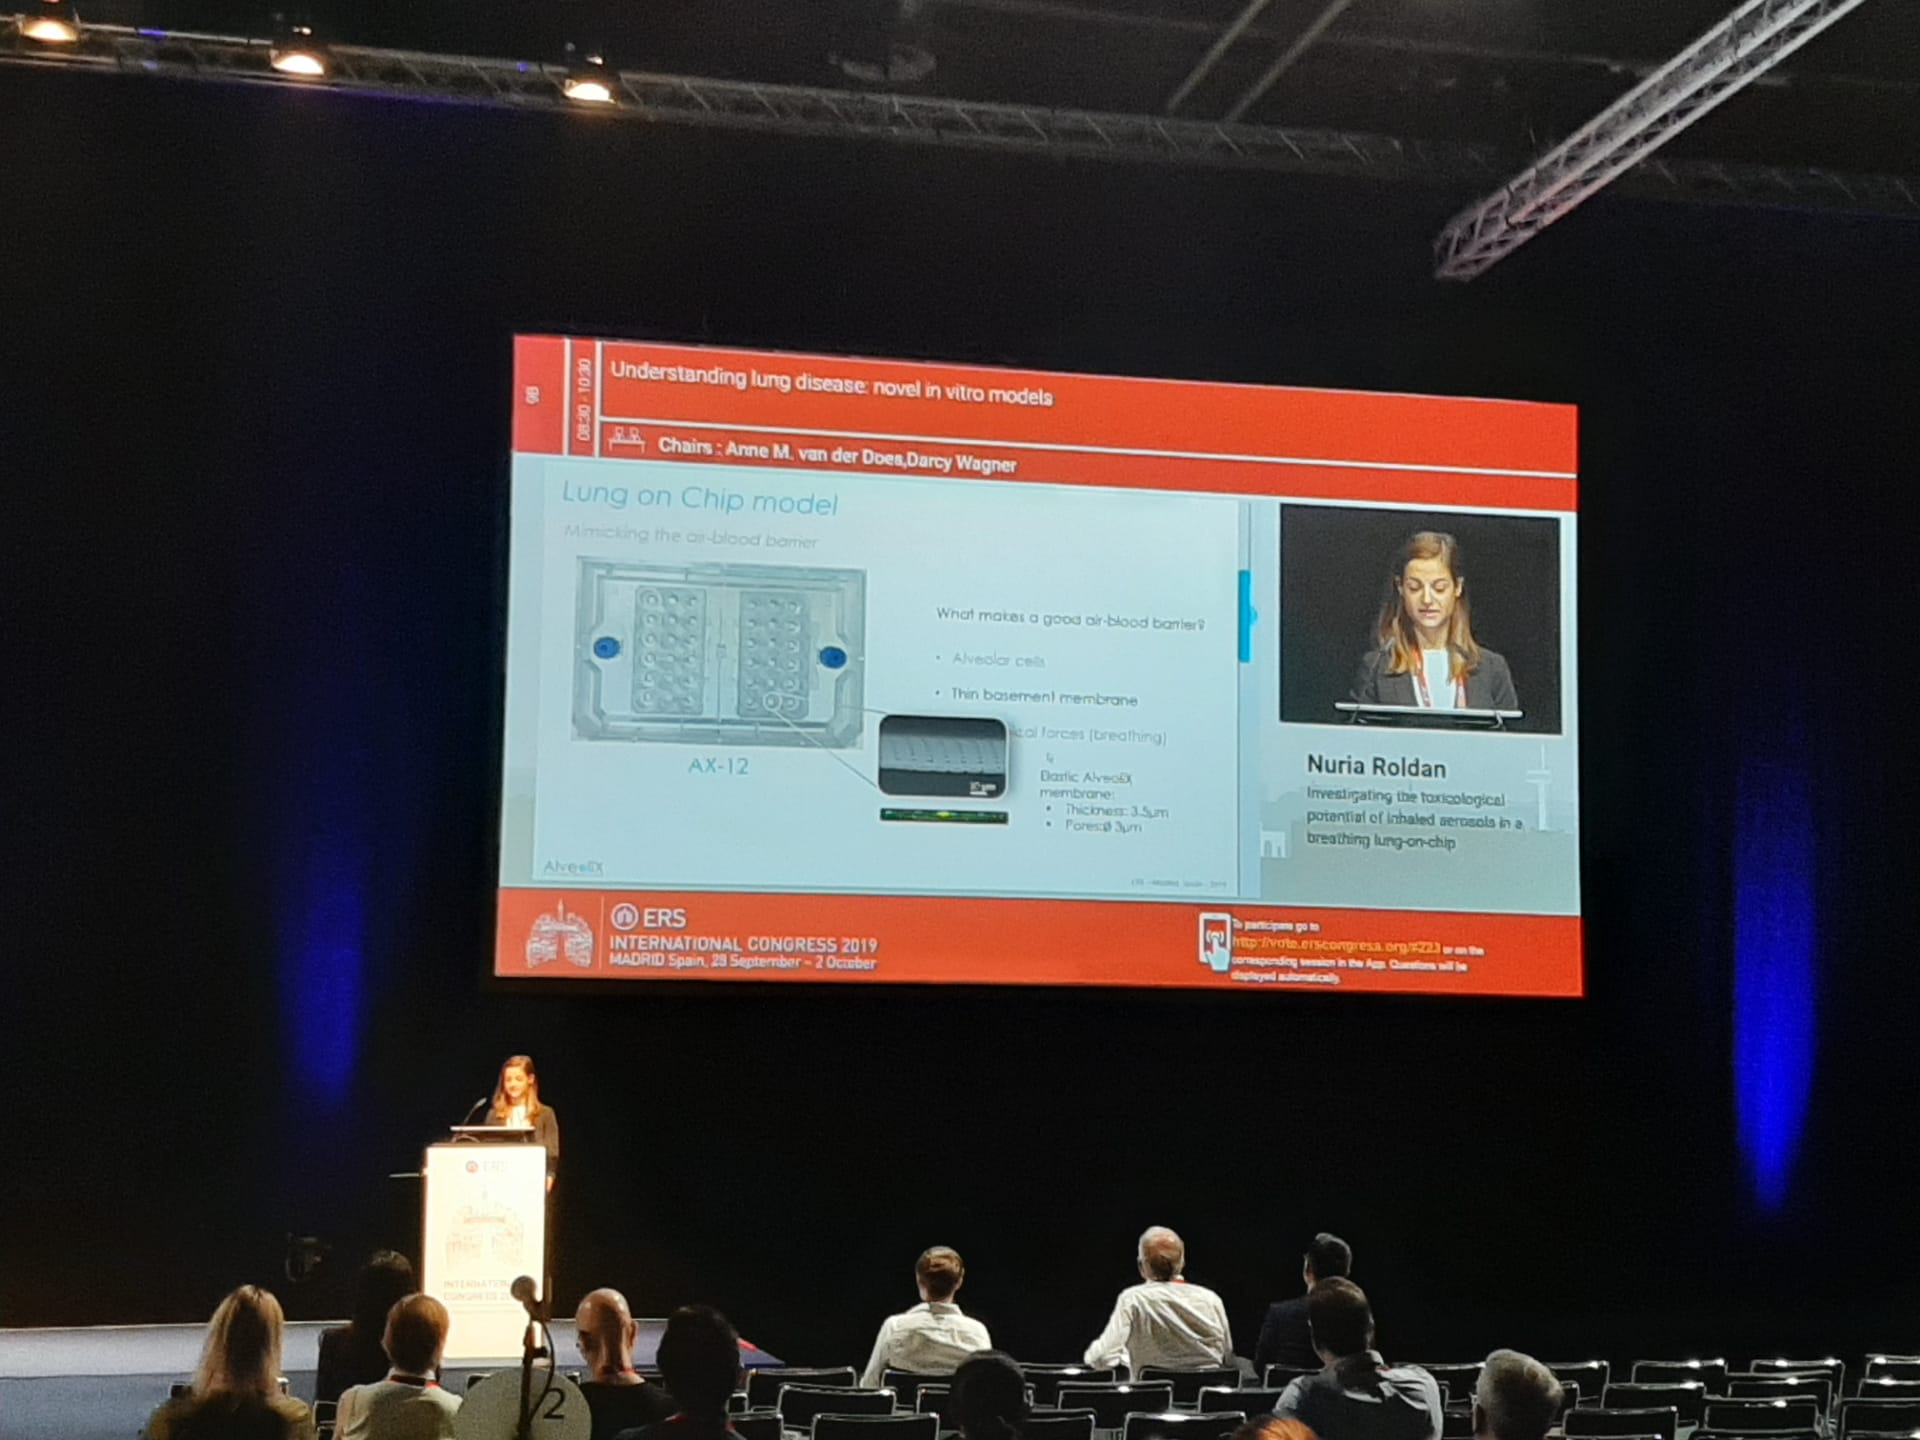 Nuria Roldan presents the AlveoliX lung-on-chip system